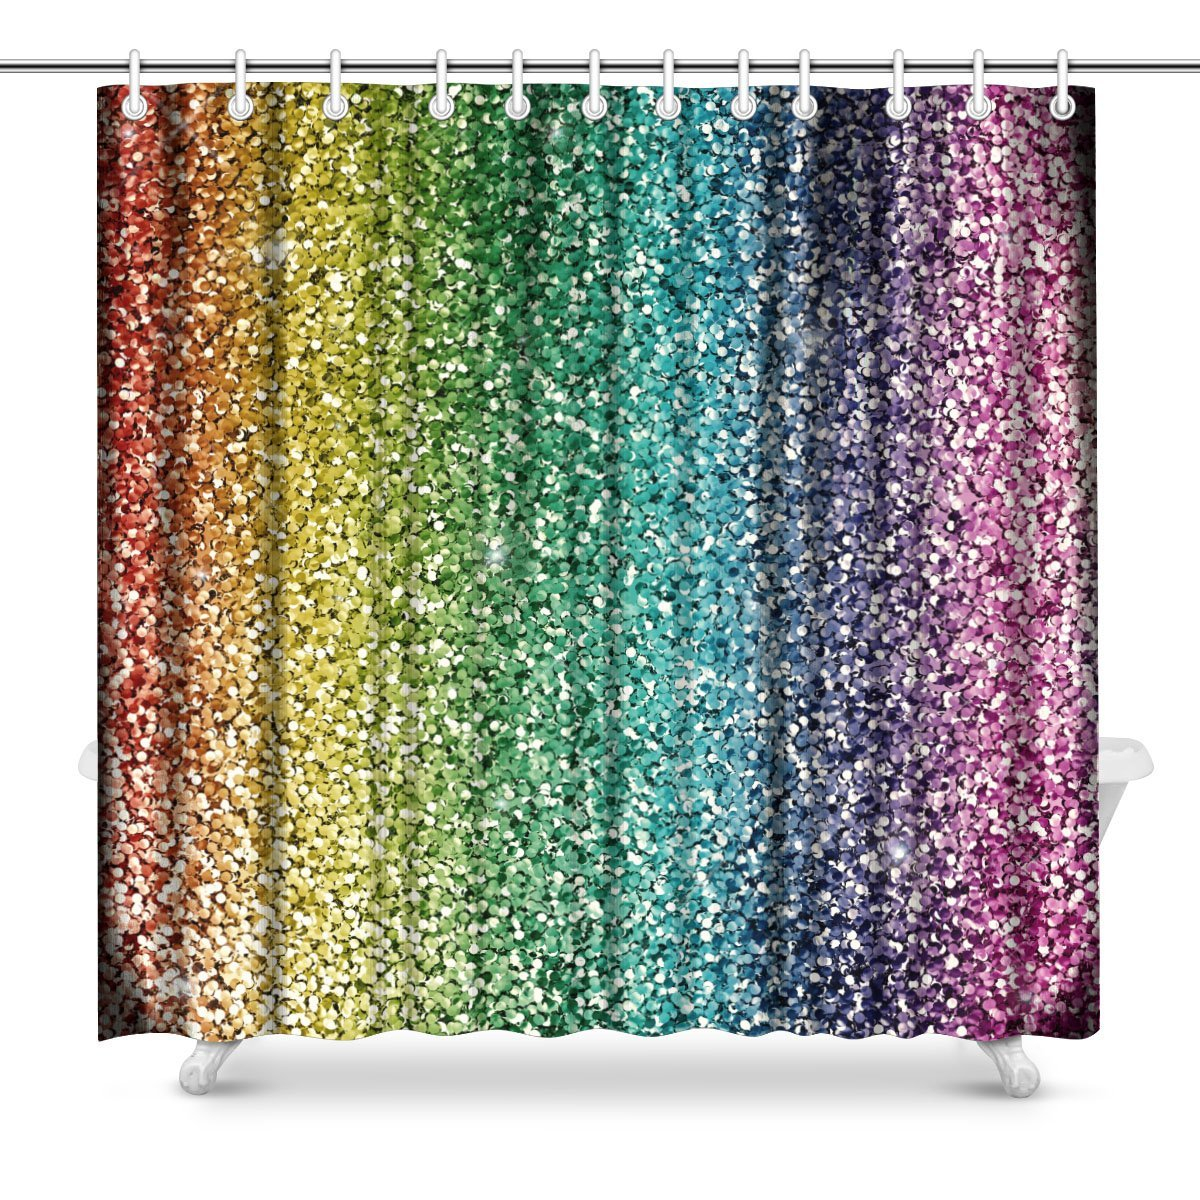 Ariel Shower Curtain Us 34 49 Aplysia Rainbow Glitter Background Polyester Fabric Bathroom Shower Curtain Set With Hooks 72 X 72 Inches In Shower Curtains From Home